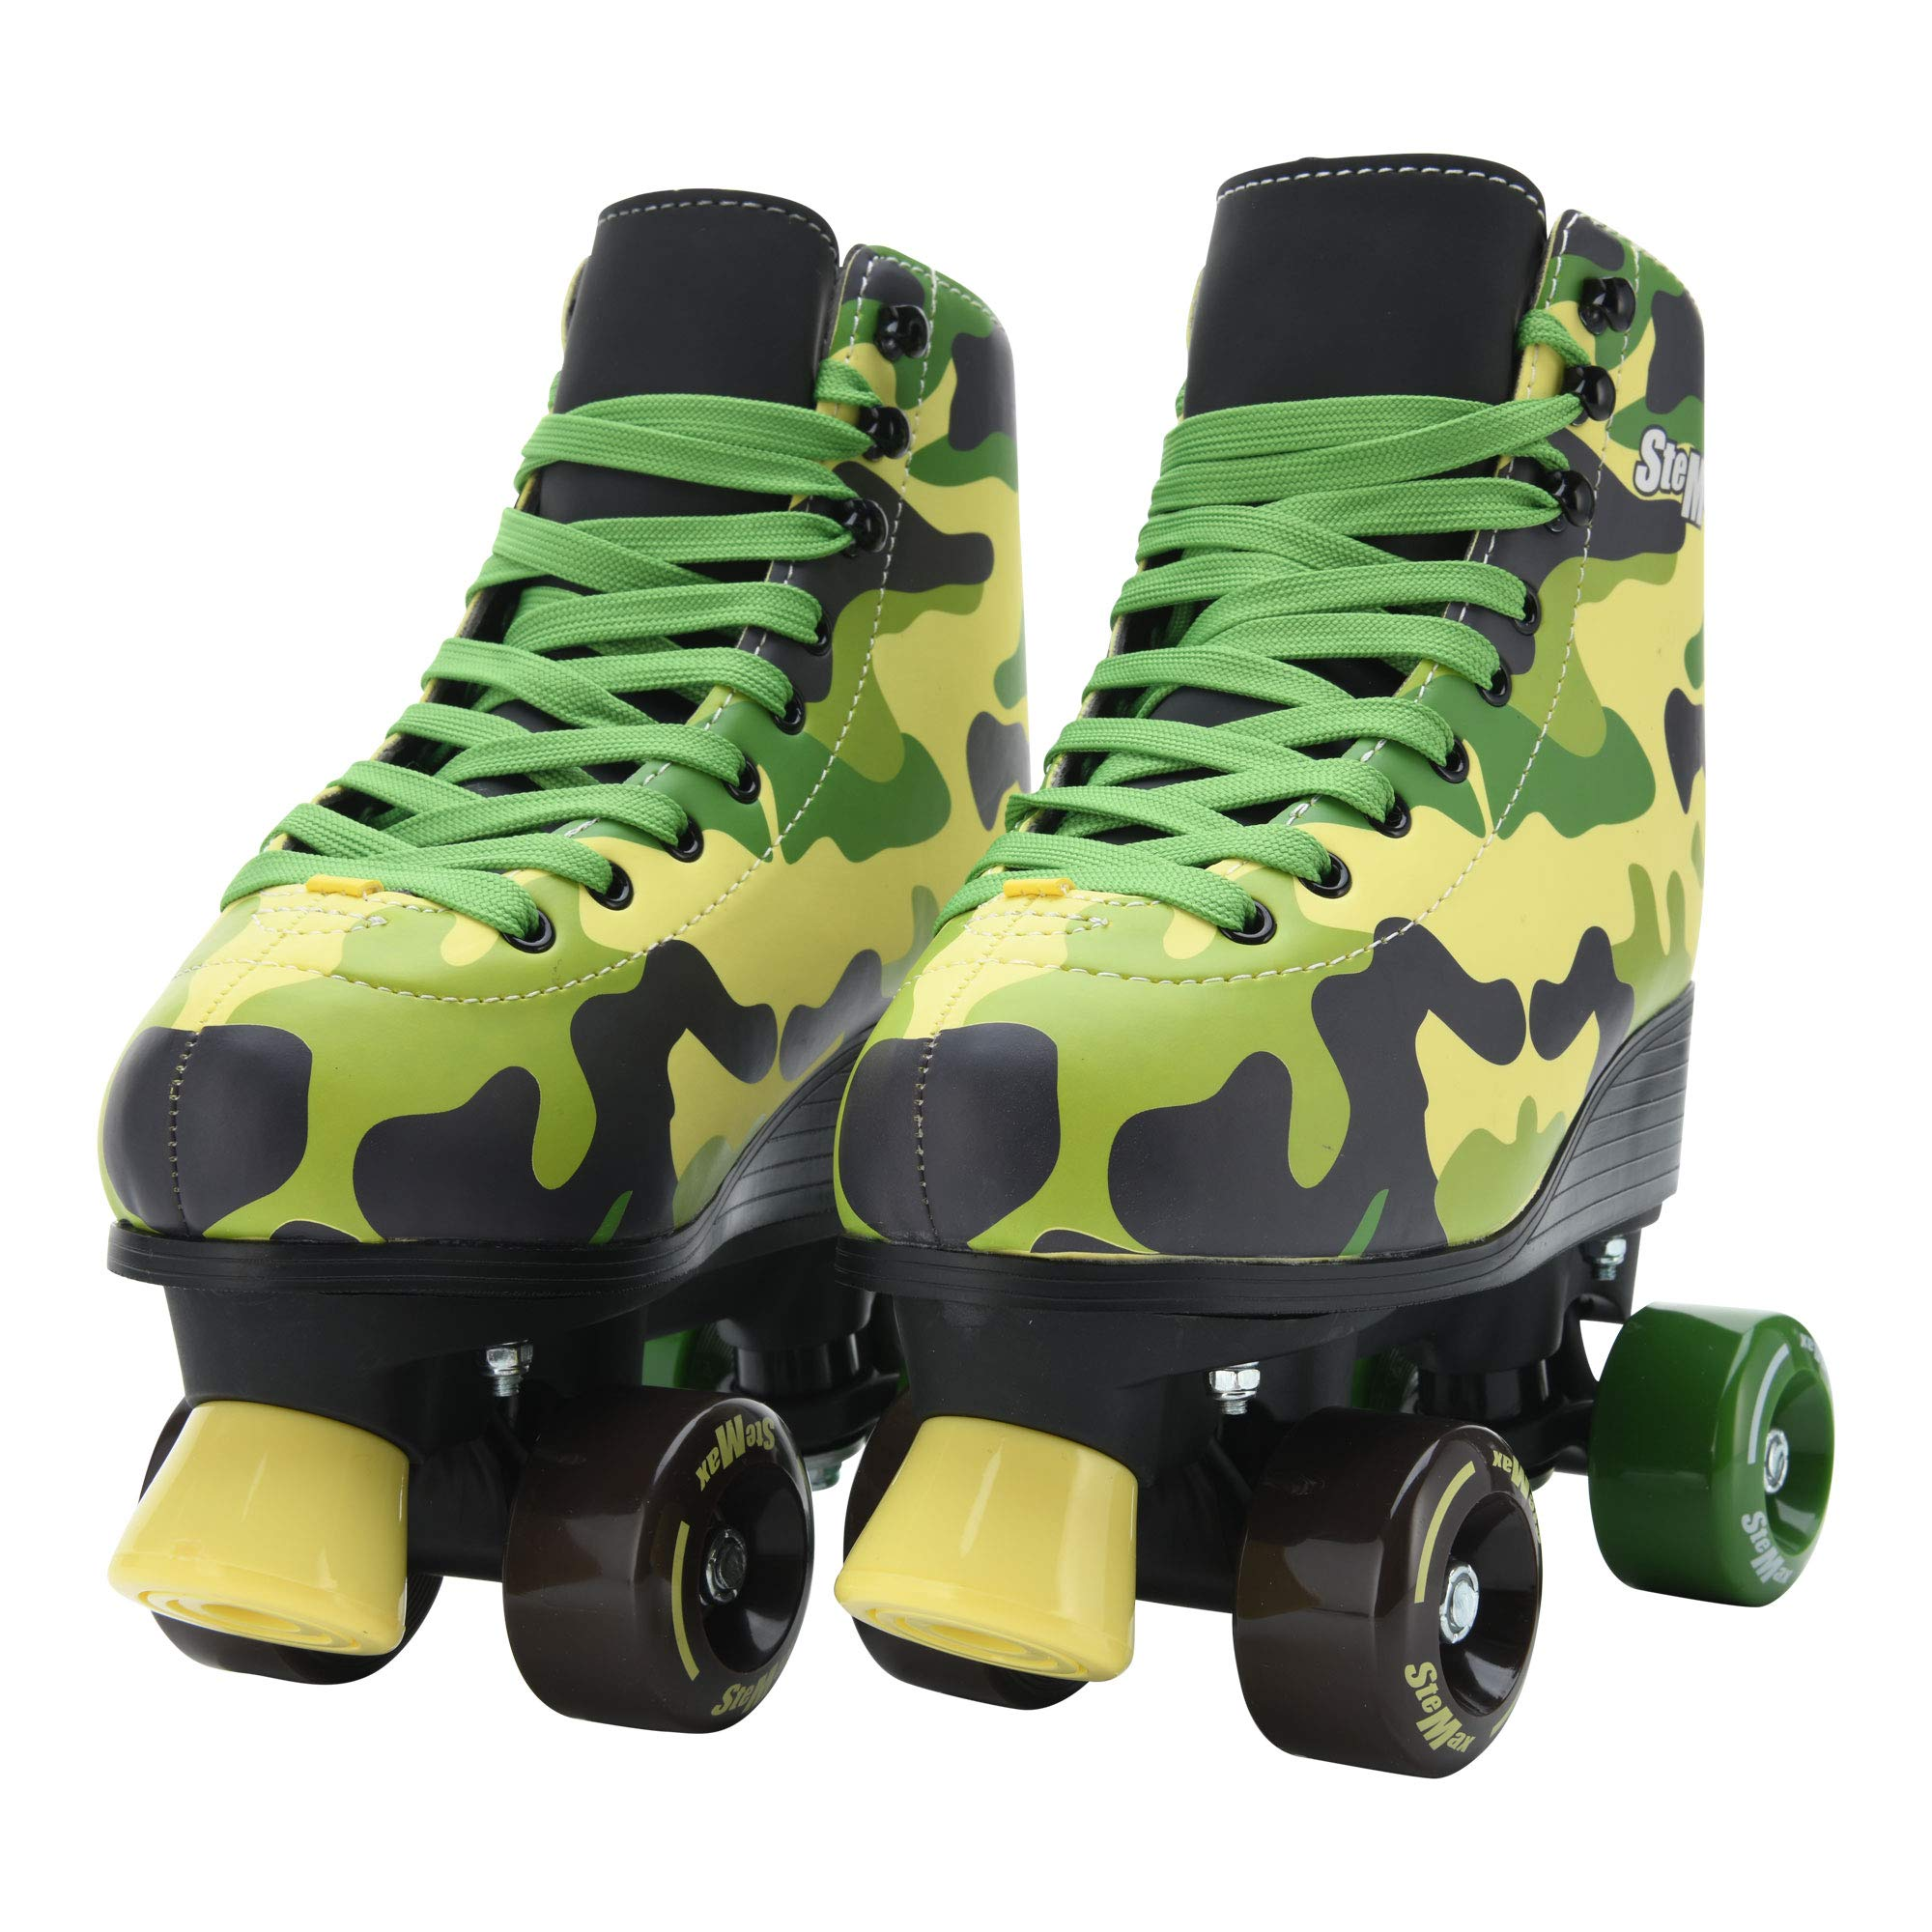 Stemax Quad Roller Skates for Girls & Boys. Outdoor Classic High Cuff Quad Skates with Lace System (4 Youth)